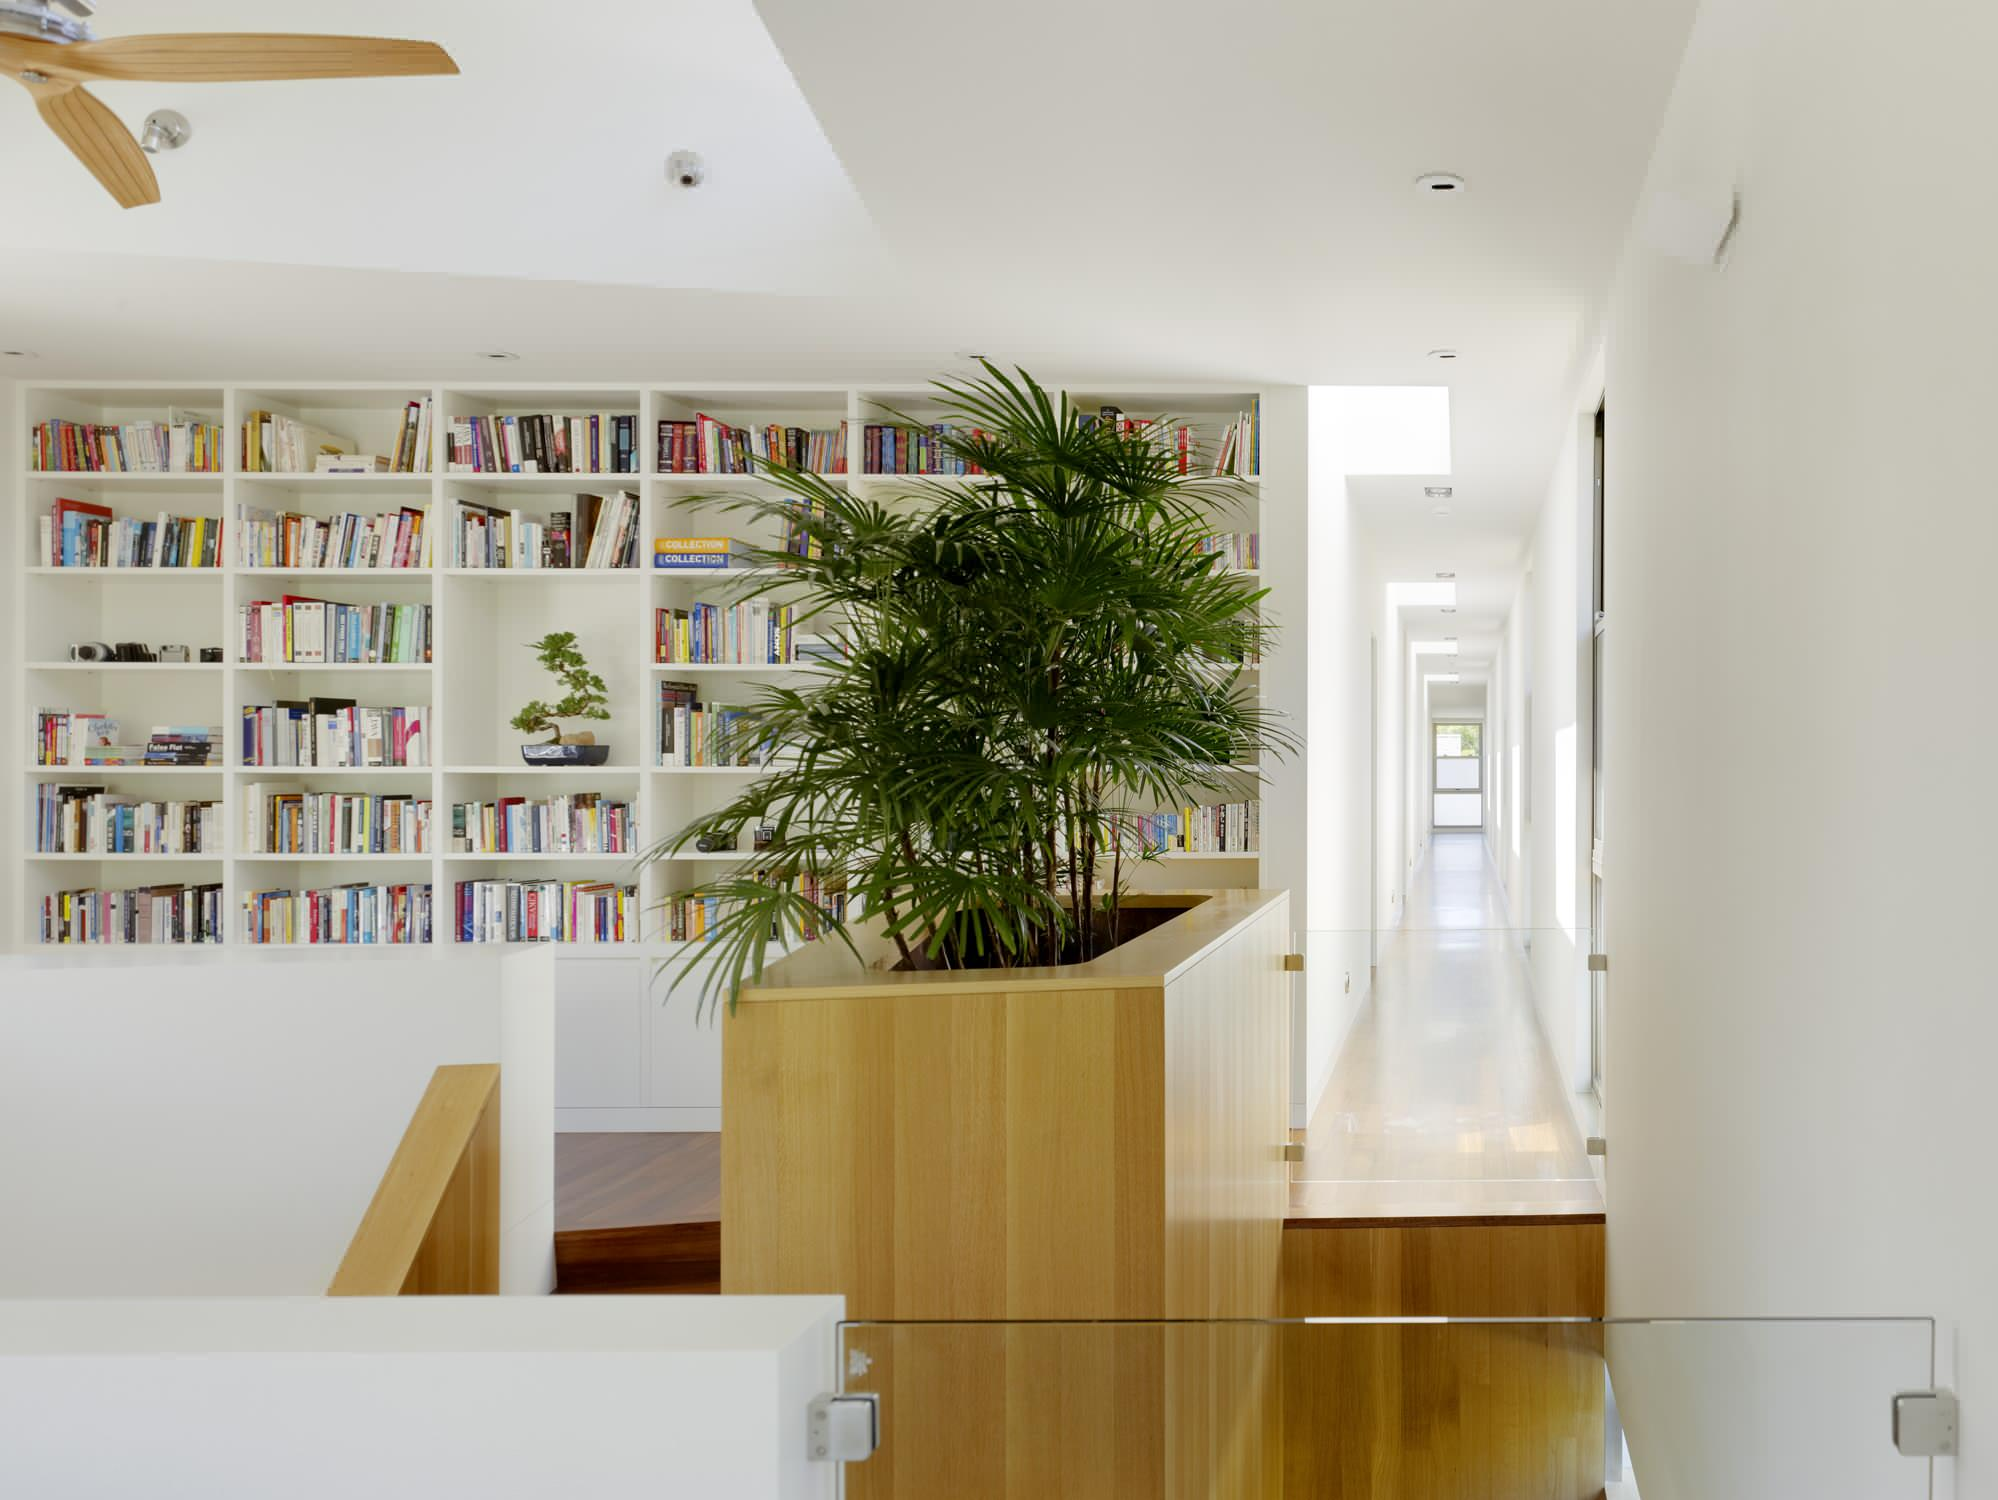 Remarkable Modern Hallway Designs That Will Inspire You With Ideas